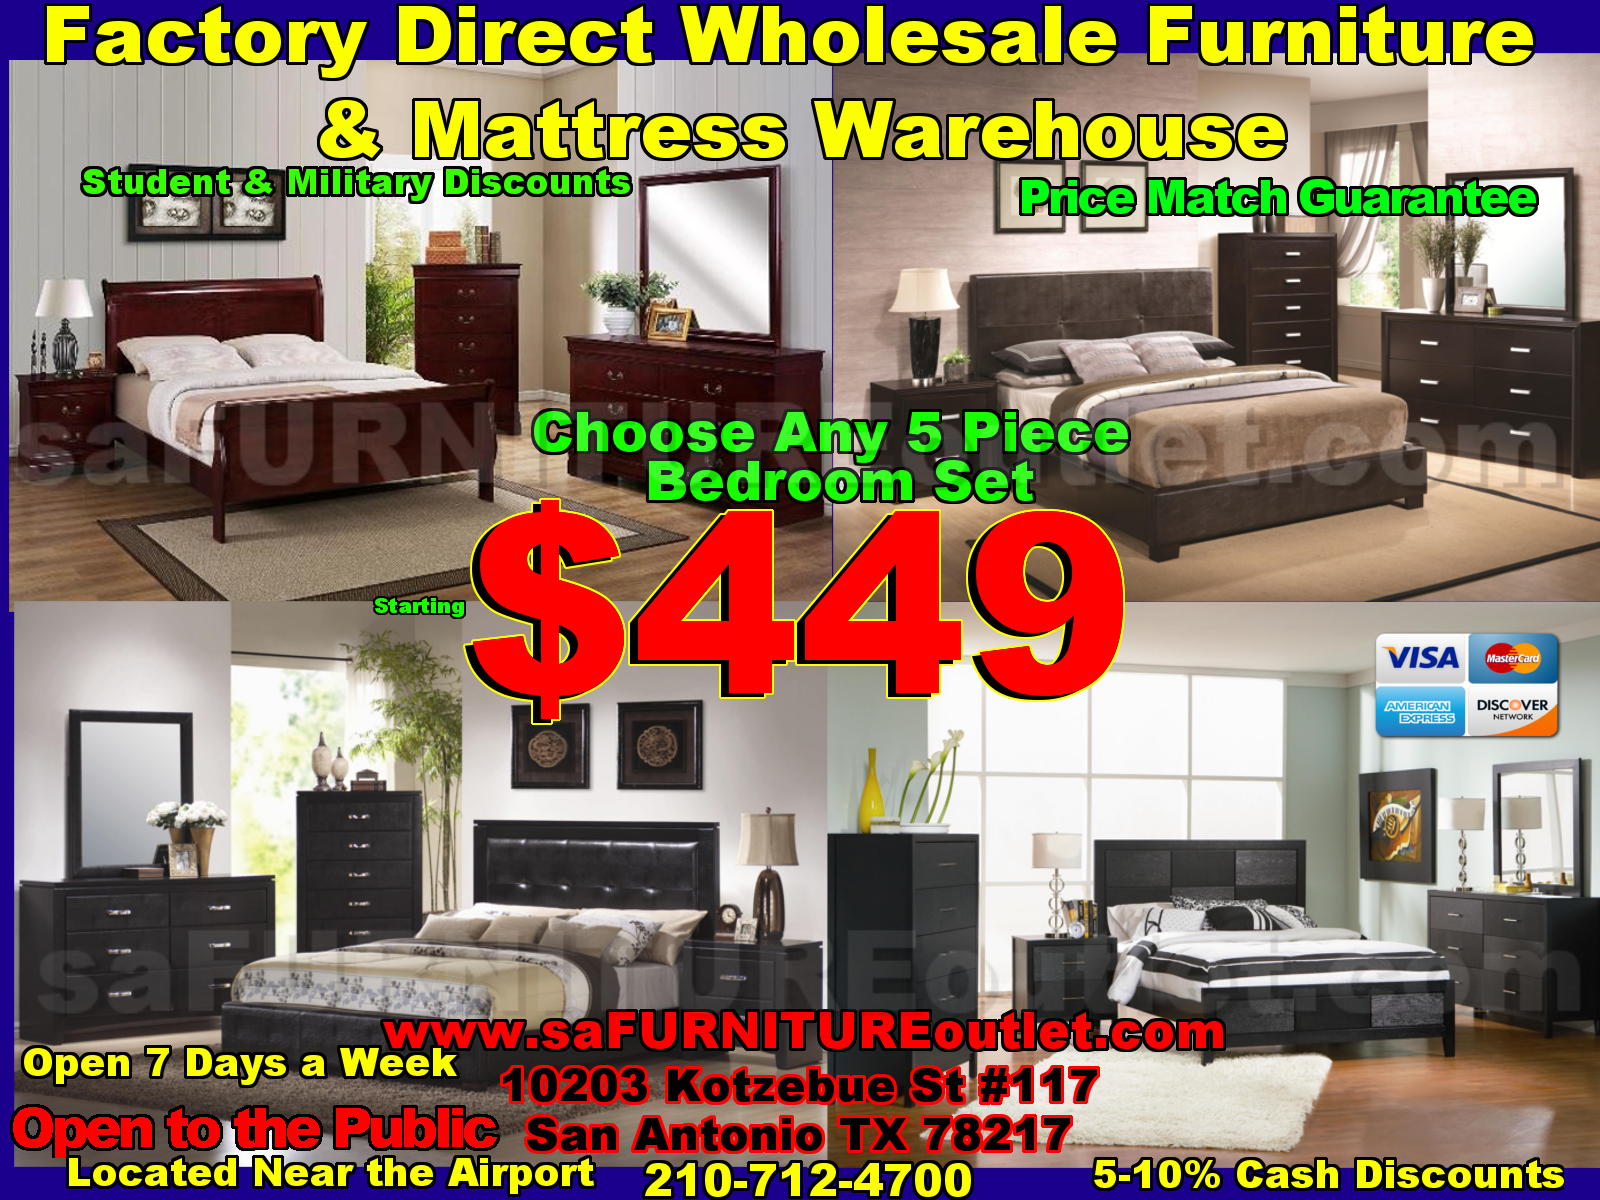 Bon San Antonio Furniture Outlet